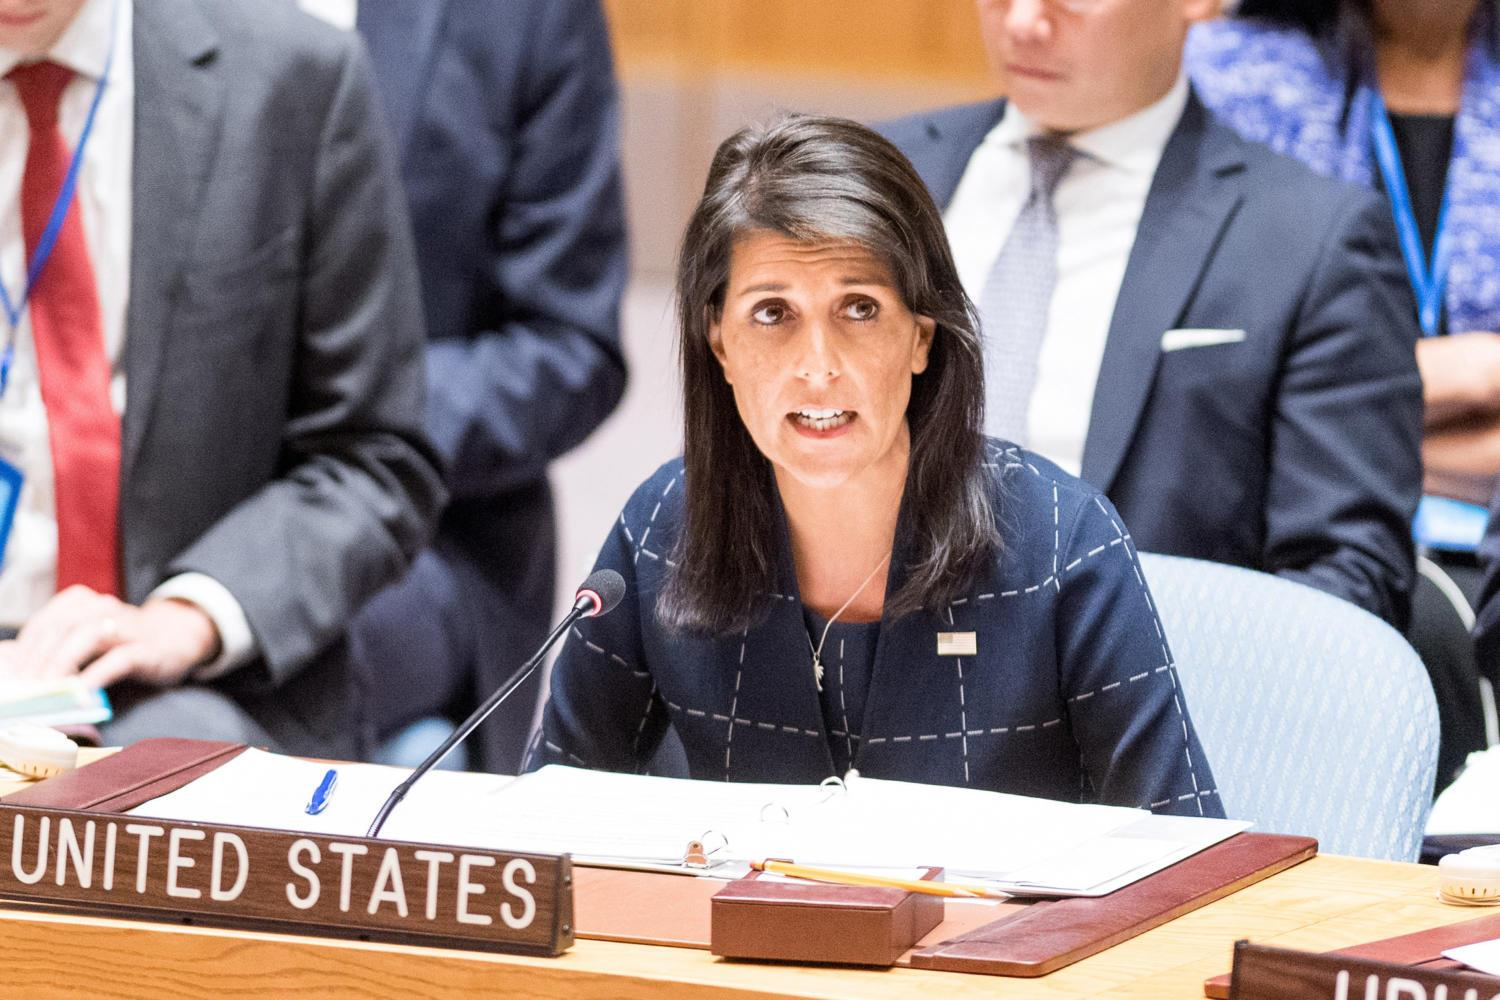 Nikki Haley, U.S. Ambassador to the United Nations, at the United Nations in New York on September 11, 2017. (Michael Brochstein/Sipa USA/TNS)